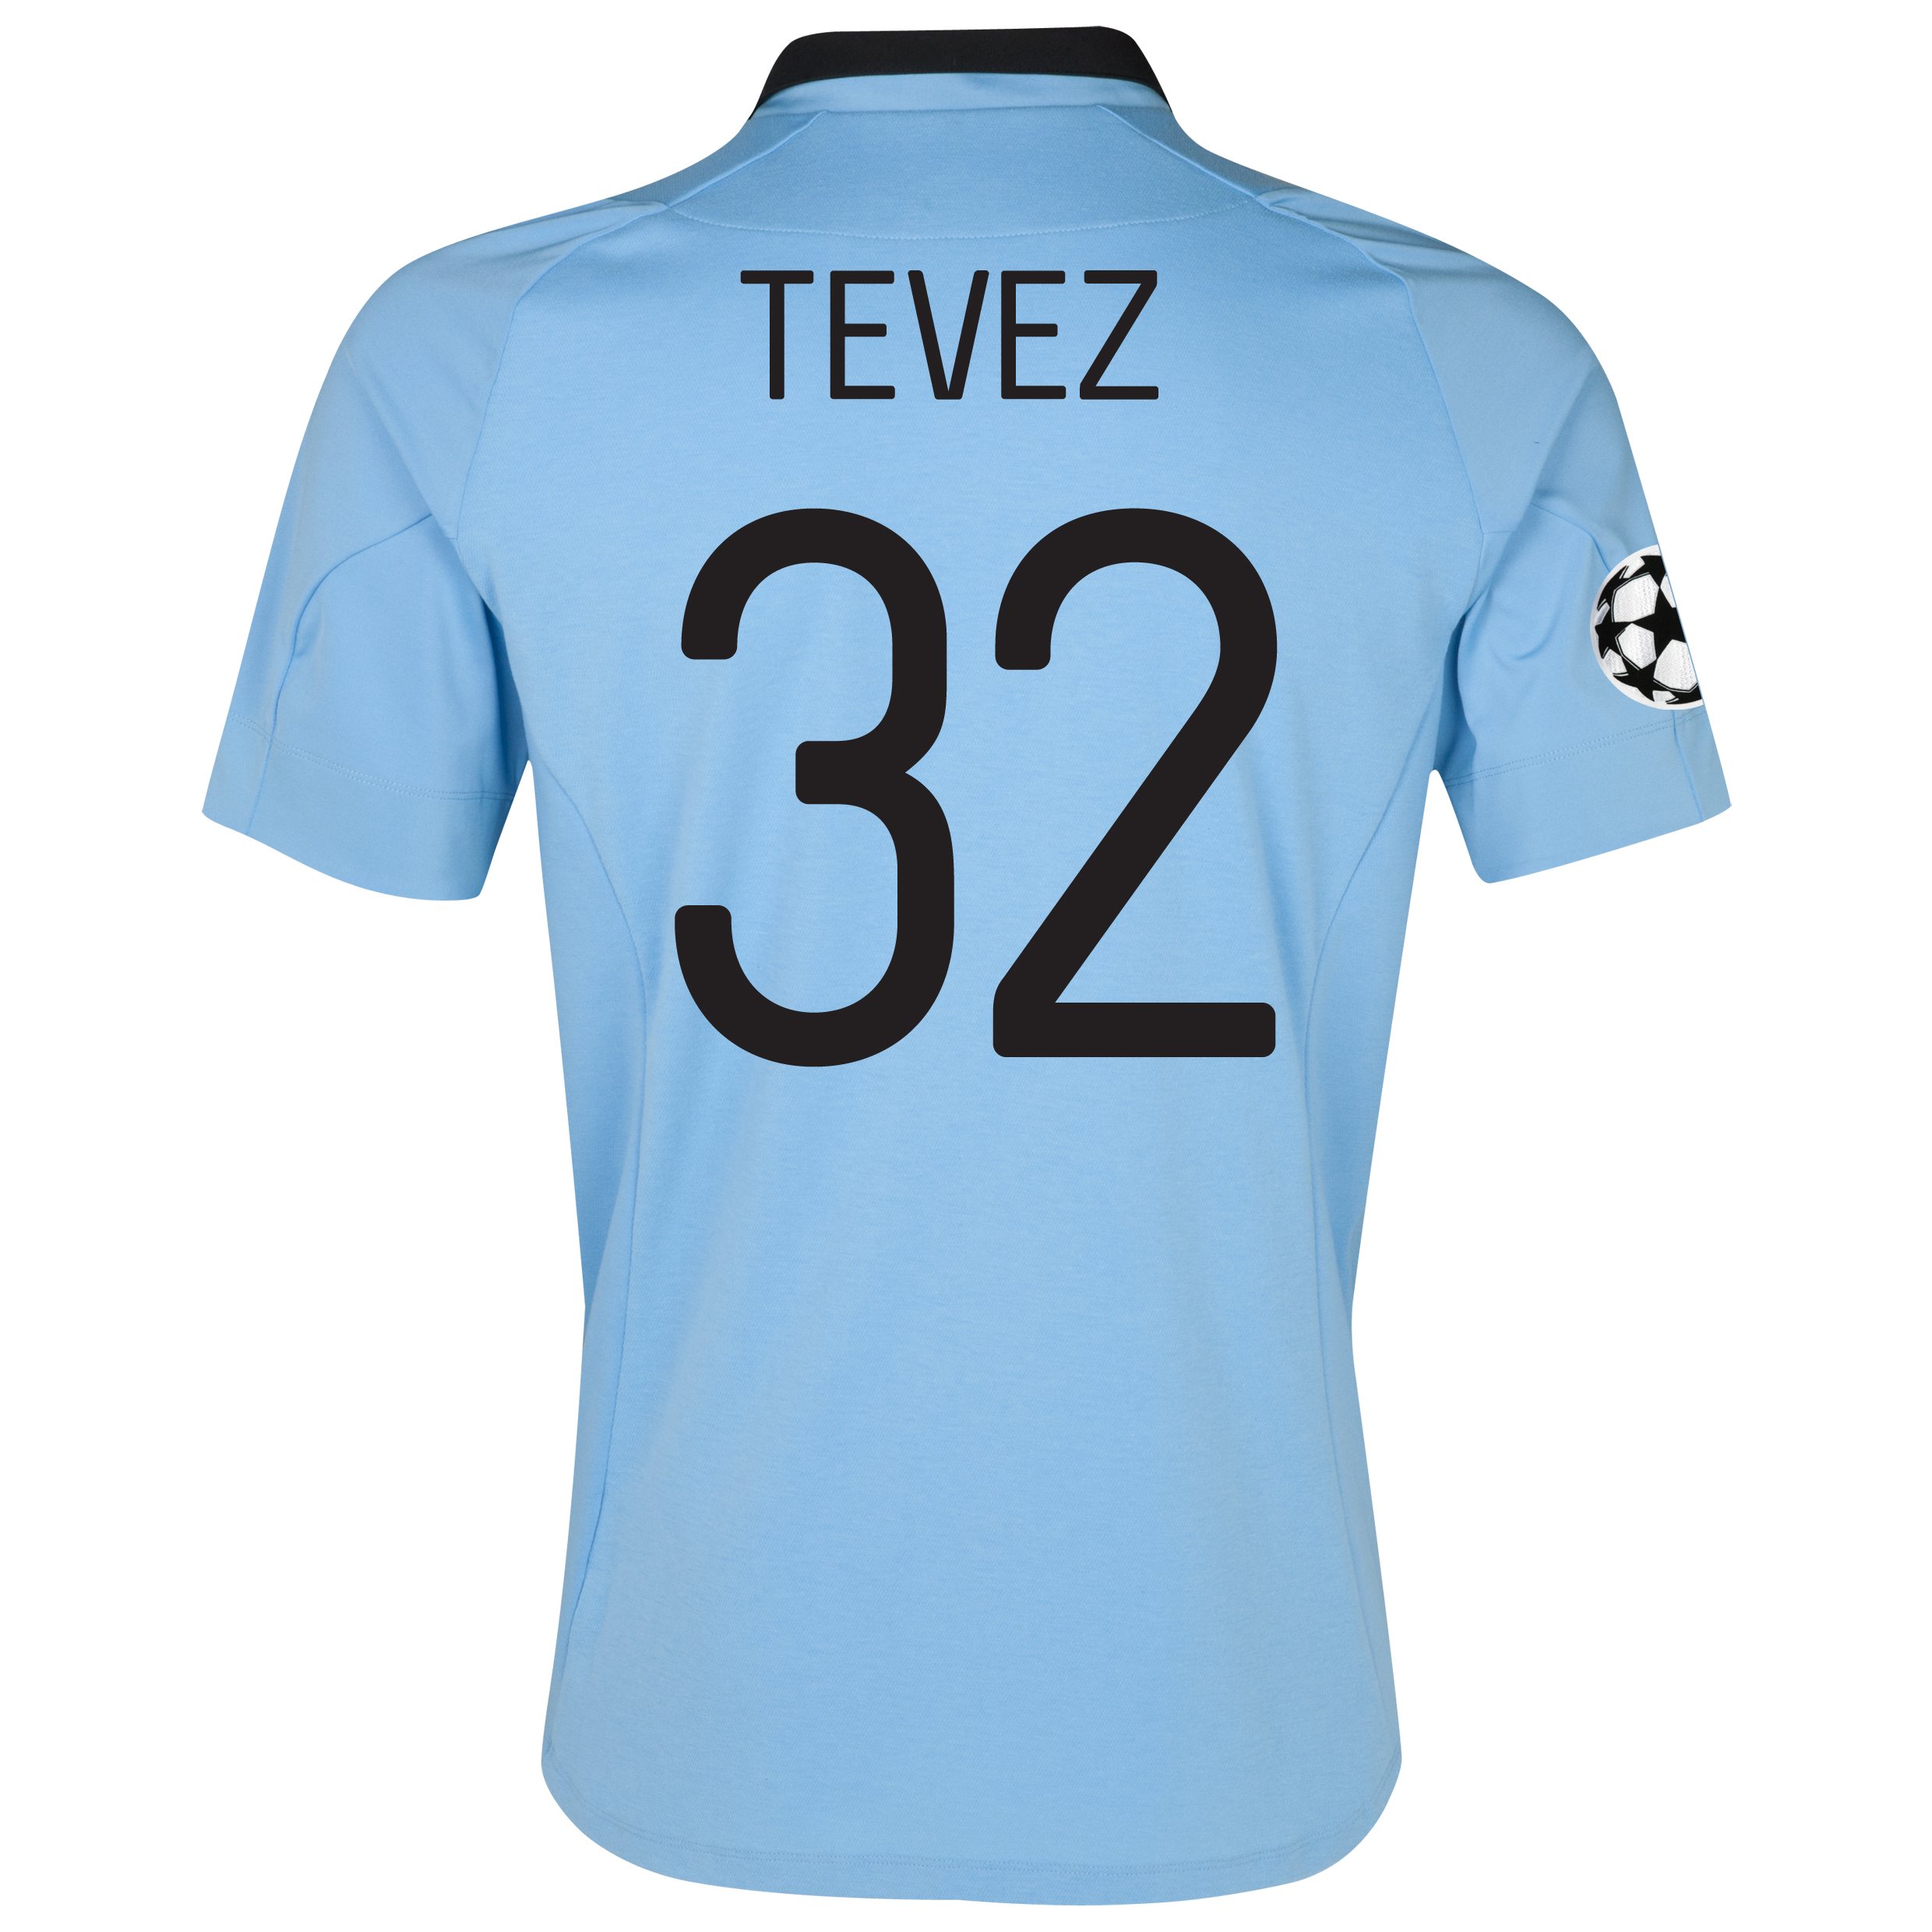 Manchester City UEFA Champions League Home Shirt 2012/13 with Tevez 32 printing